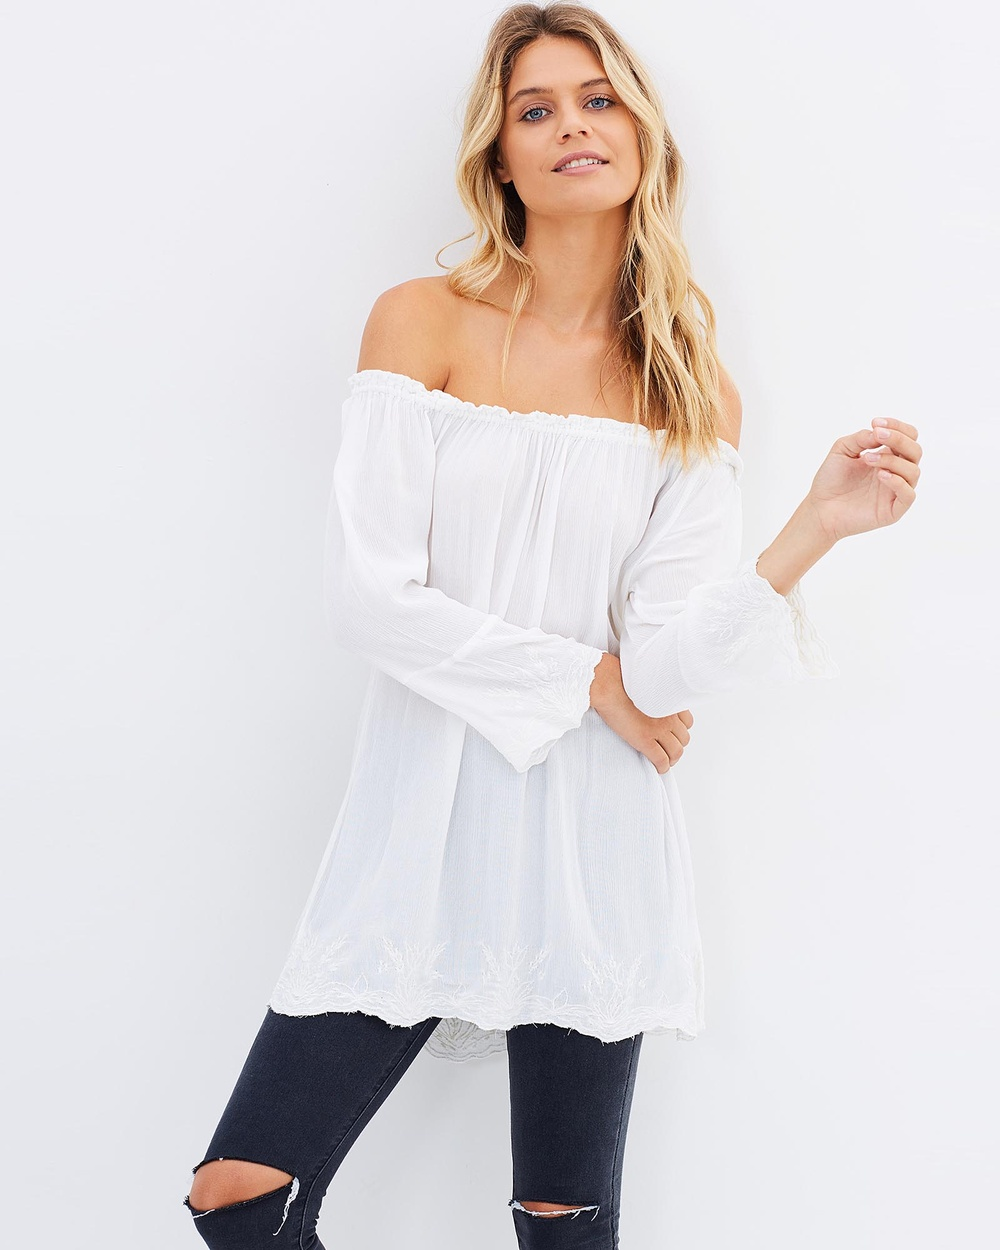 Kaja Clothing Lovisa Blouse Tops Cream Lovisa Blouse